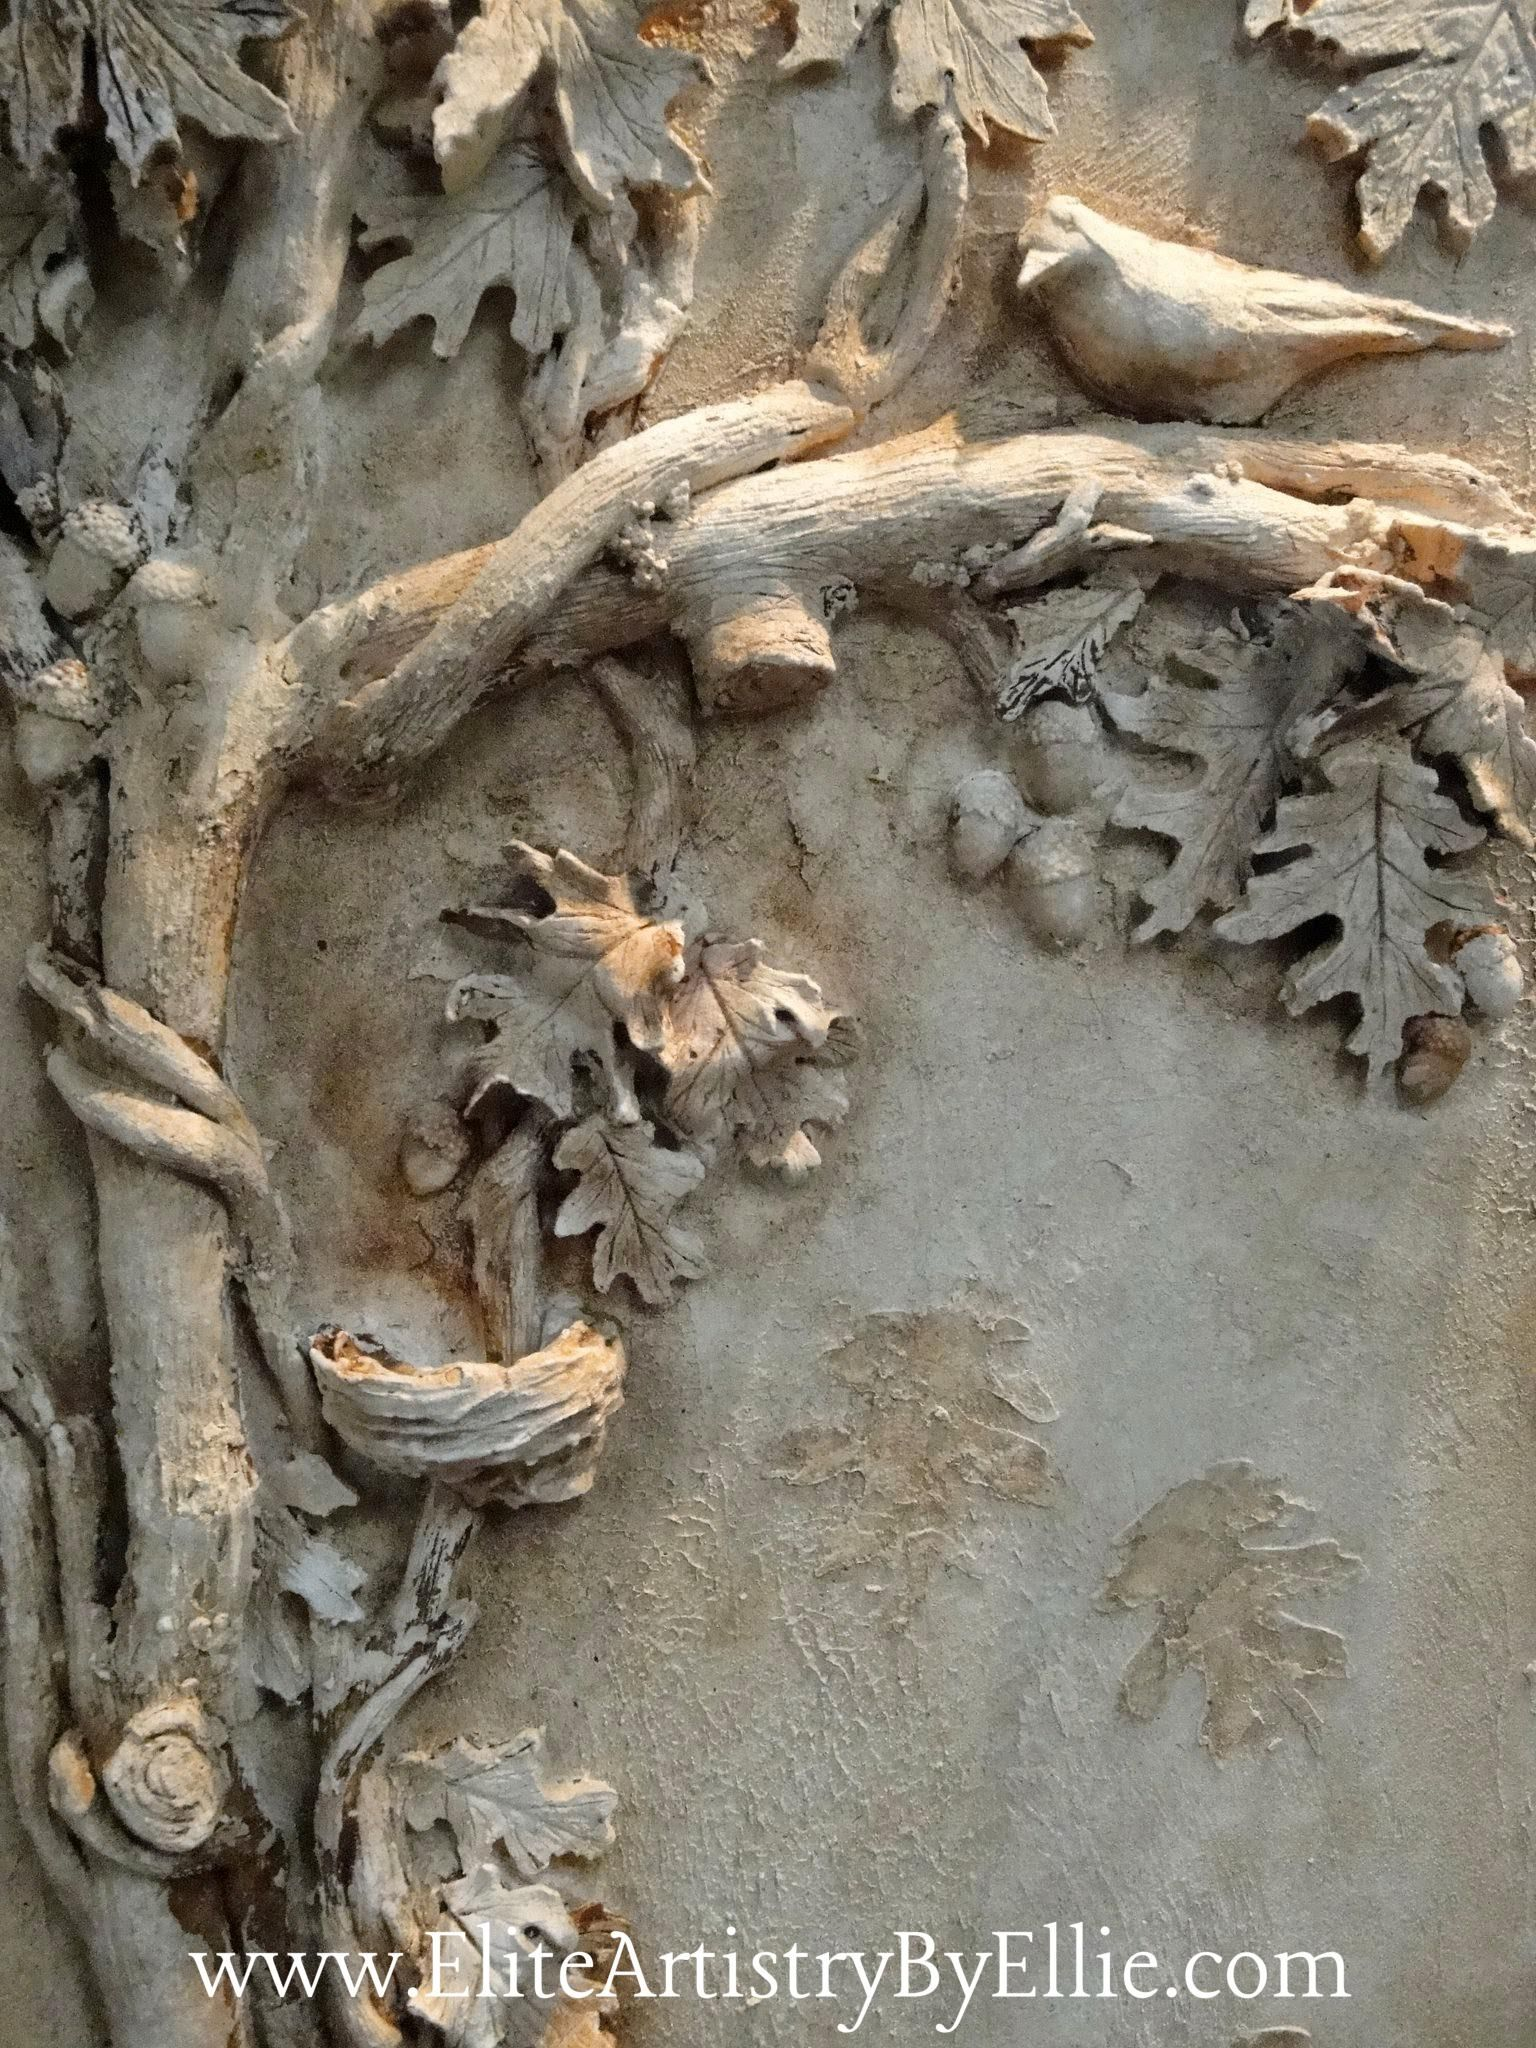 Pin By Marisol On Cuadros A Relieve En Pared In 2020 Plaster Art Plaster Wall Art Relief Sculpture